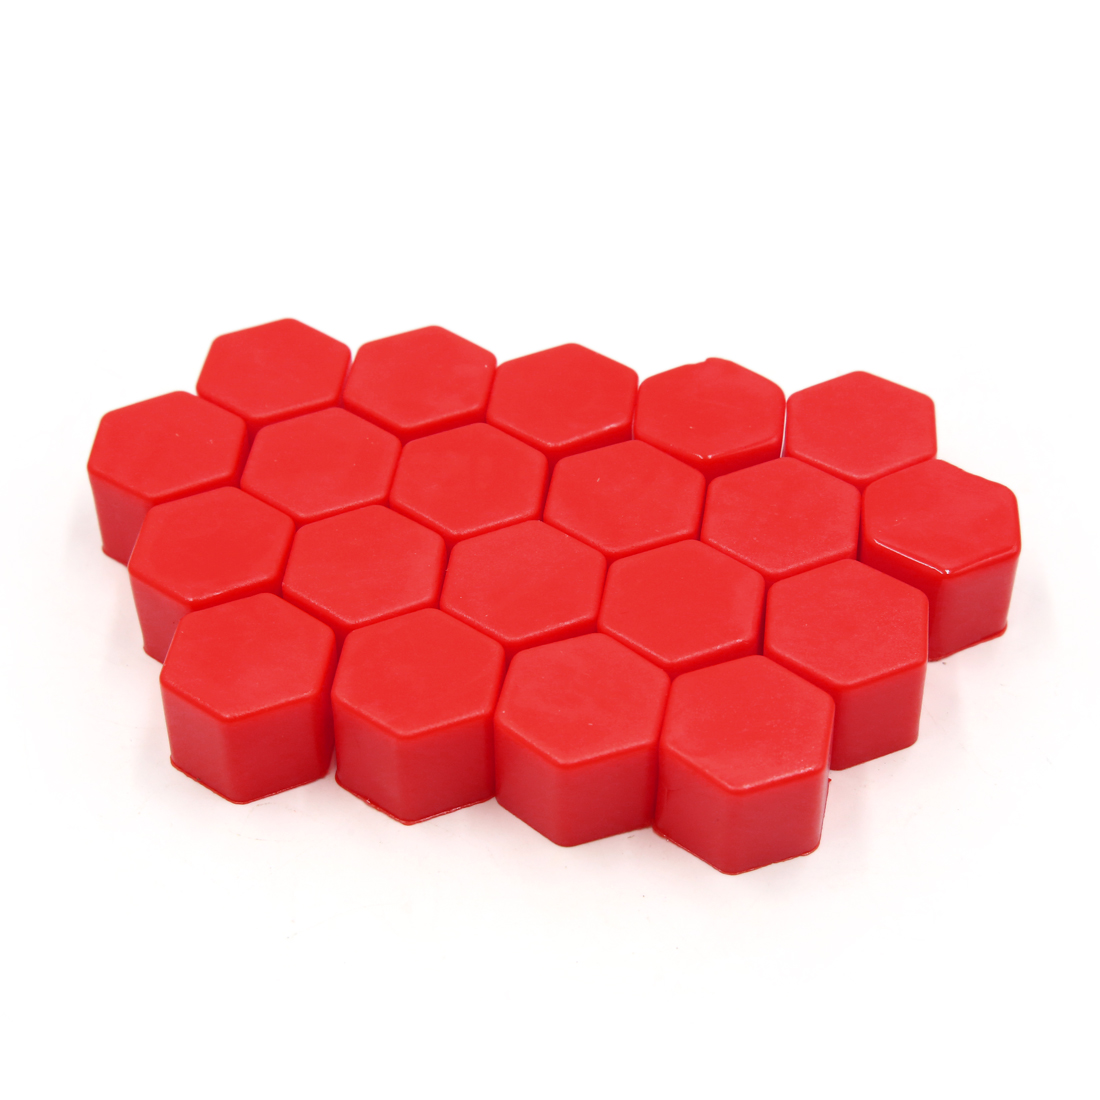 20 Pcs 17 x 19mm Red Car Vehicle Wheel Tyre Hub Screw Bolt Nut Cap Covers